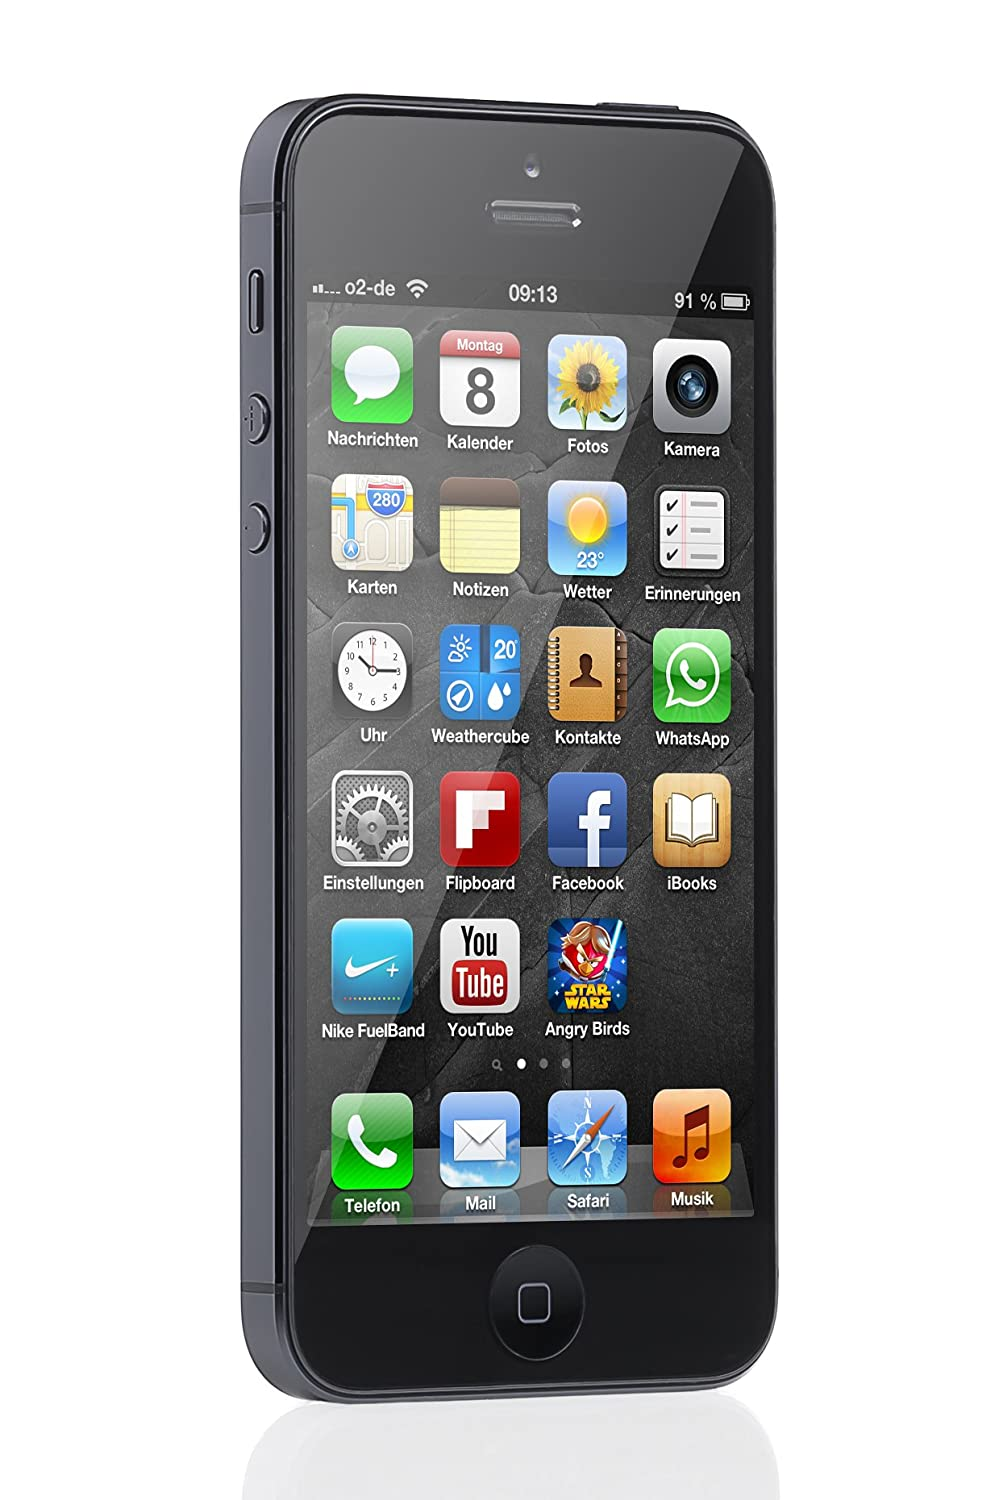 C cricket phones for sale existing customers - Amazon Com Apple Iphone 5 Unlocked Cellphone 16gb Black Cell Phones Accessories